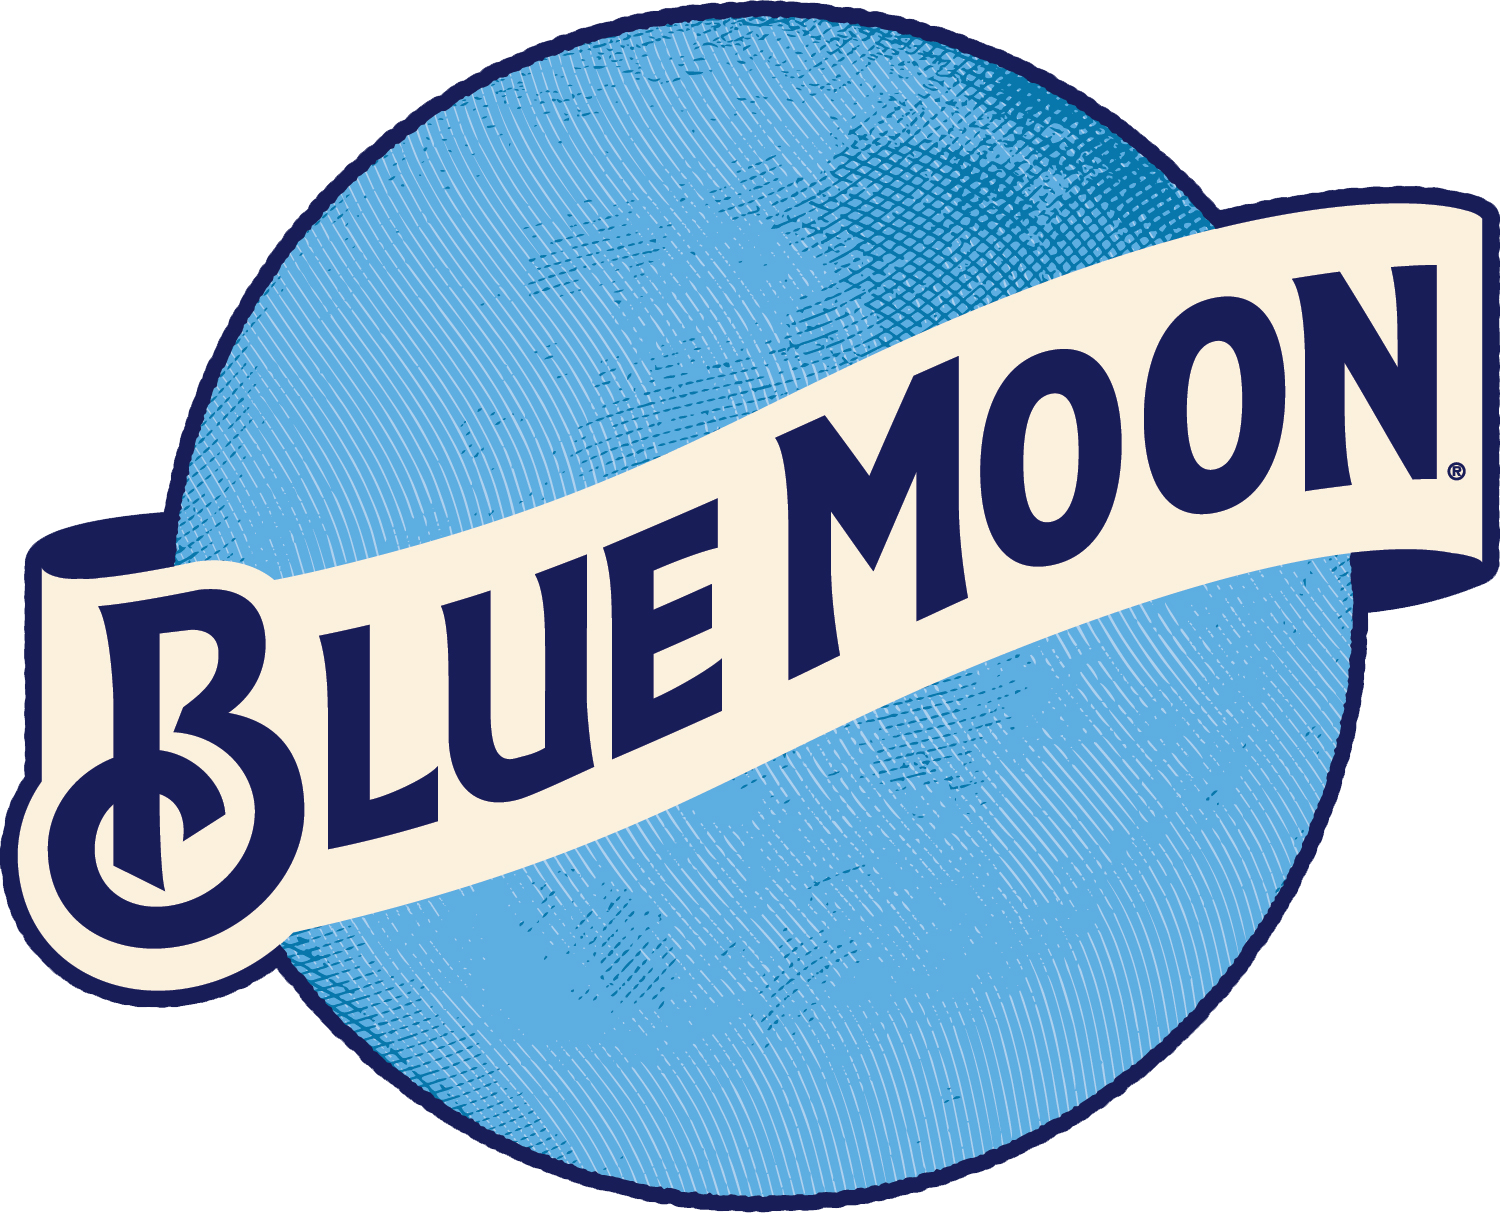 Blue moon logo png. Fine american and imported